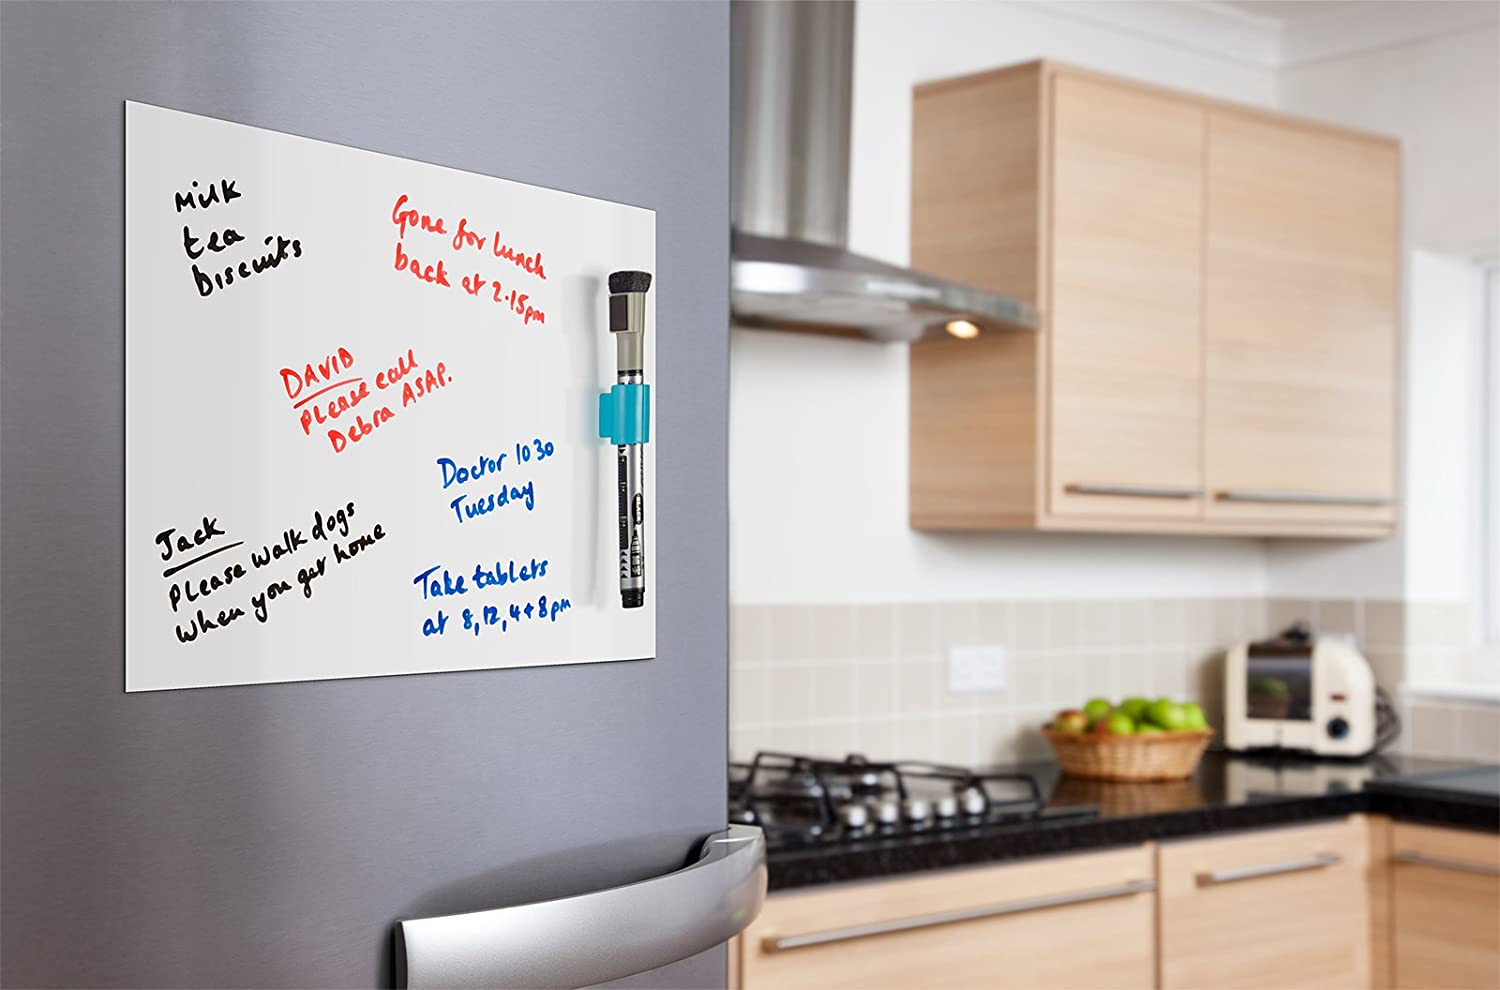 Exceptional Whitestrawberry A4 MAGNETIC WHITEBOARD SHEET MEMO BOARD FOR KITCHEN FRIDGE  DOOR With Magnetic Marker And Blue Magnetic Marker Holder .